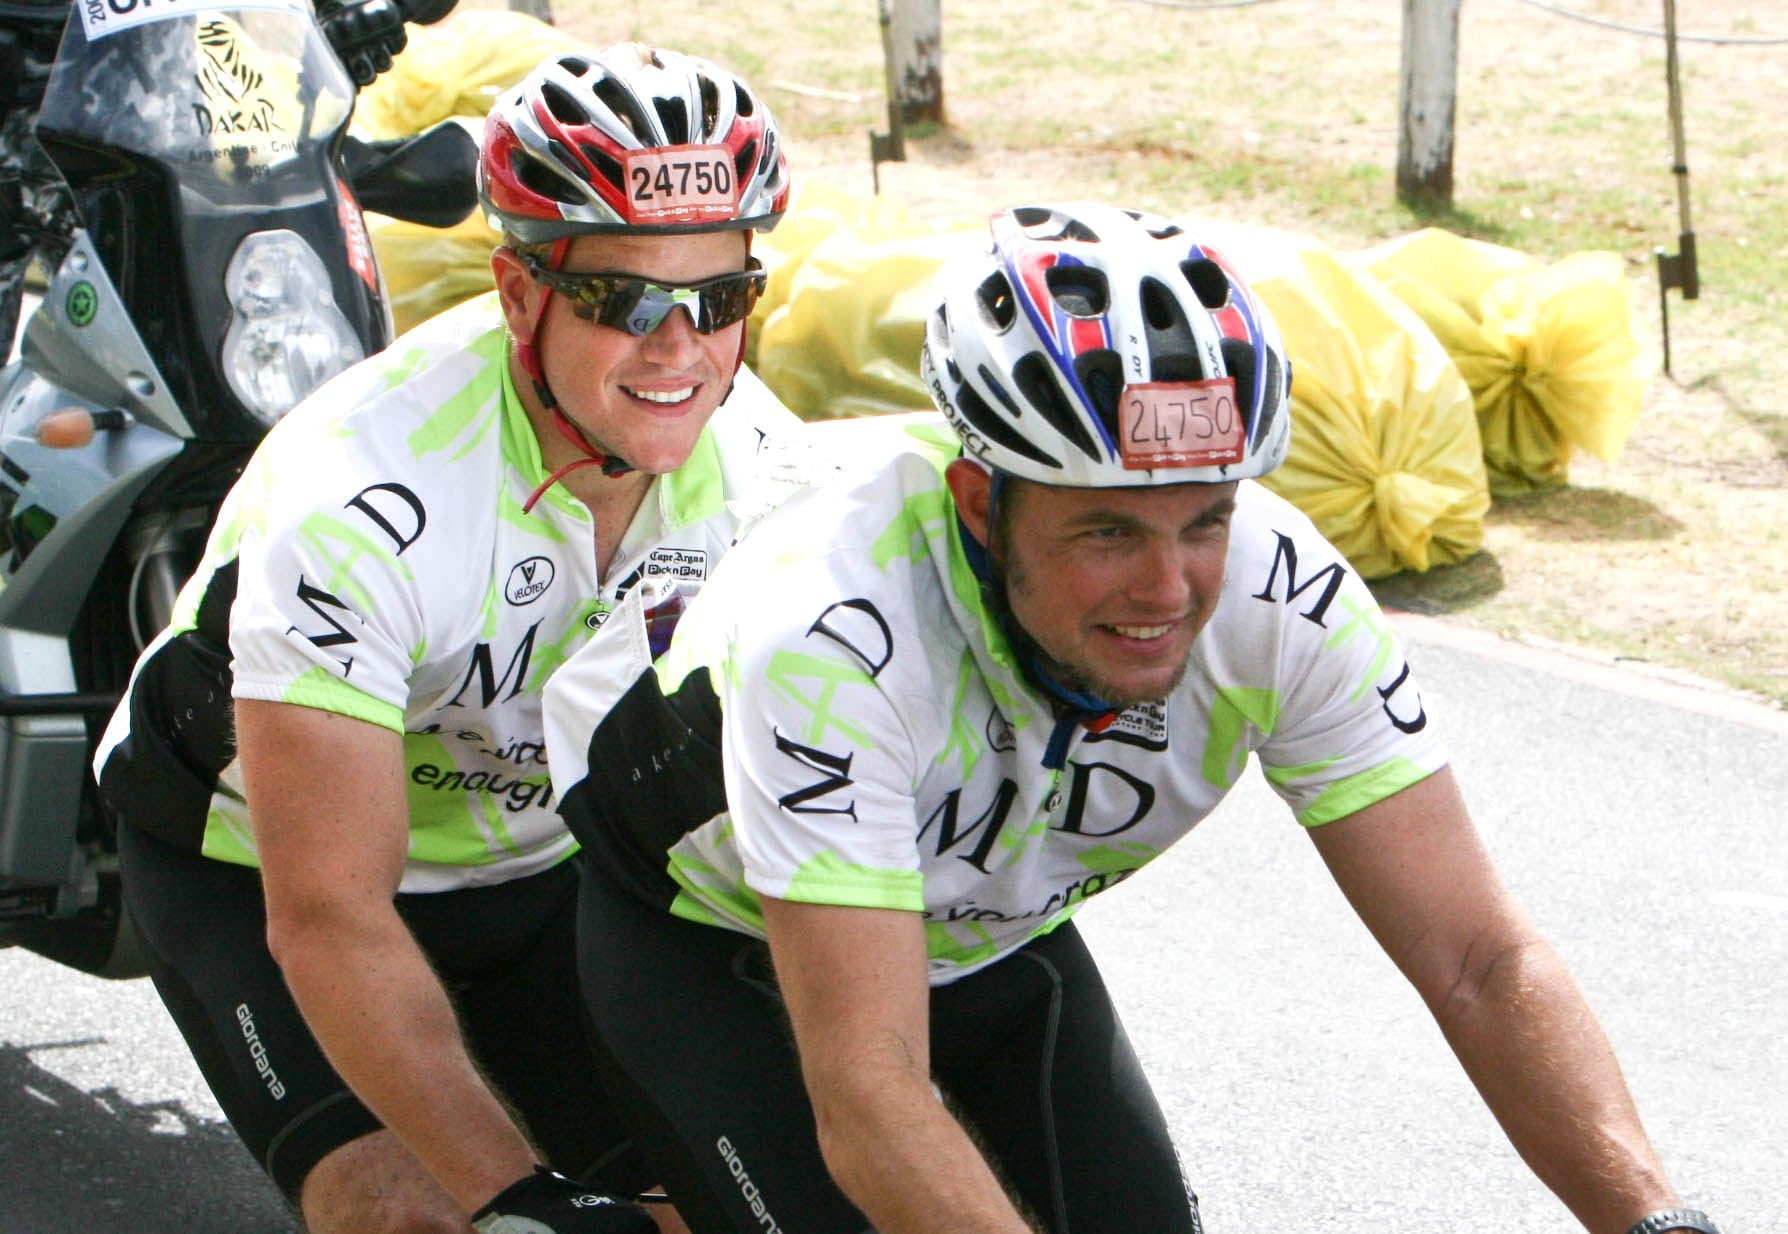 Matt Damon Completes a Bike Race in South Africa With His ...